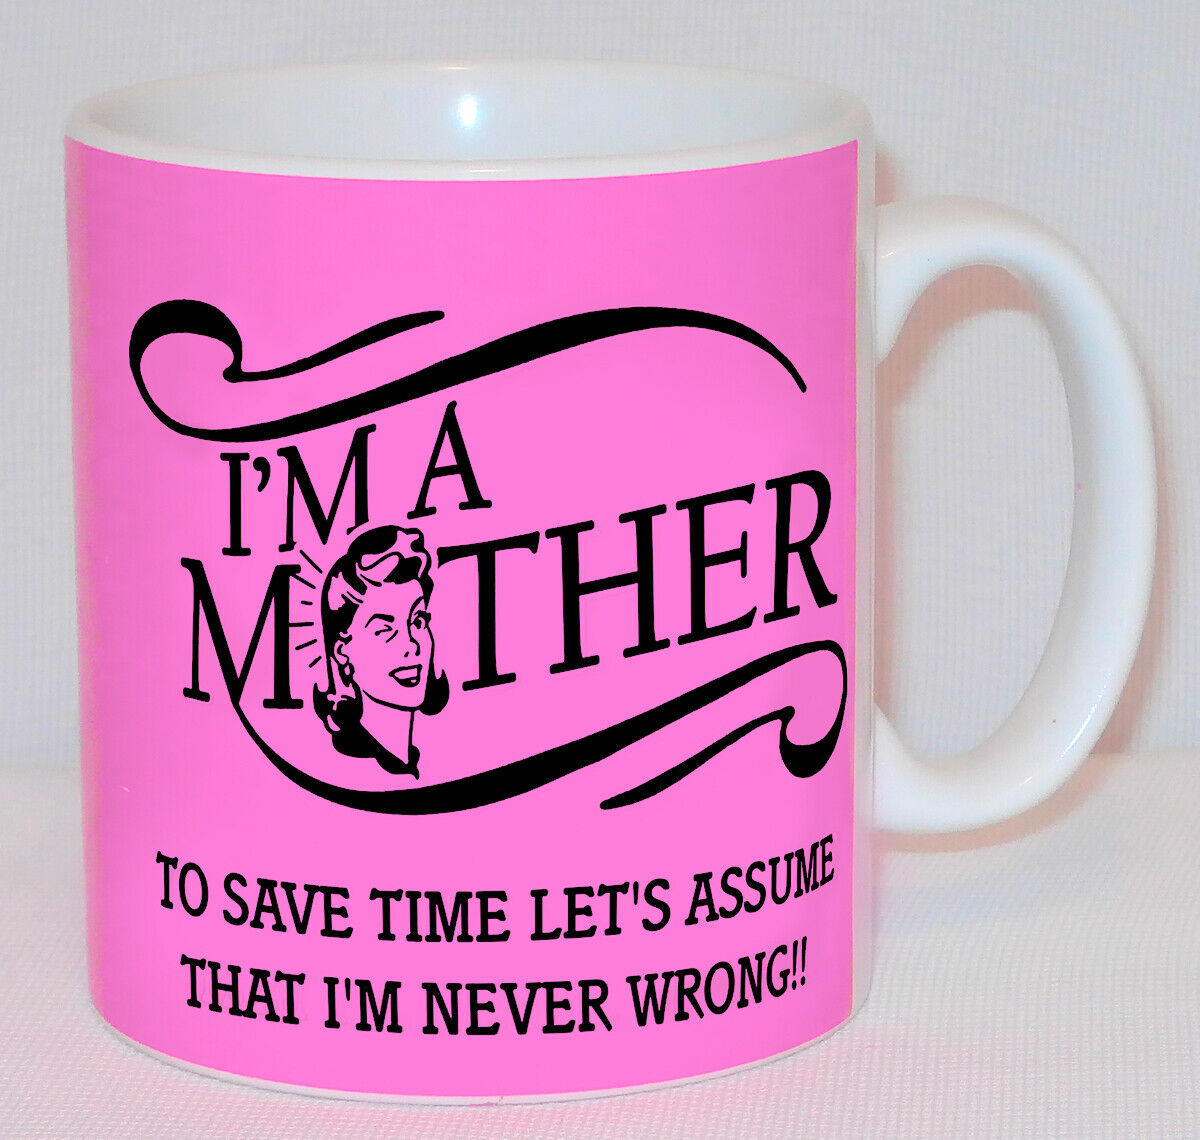 I'm A Mother Assume I'm Never Wrong Mug Can PERSONALISE Great Mother's Day Gift image 3